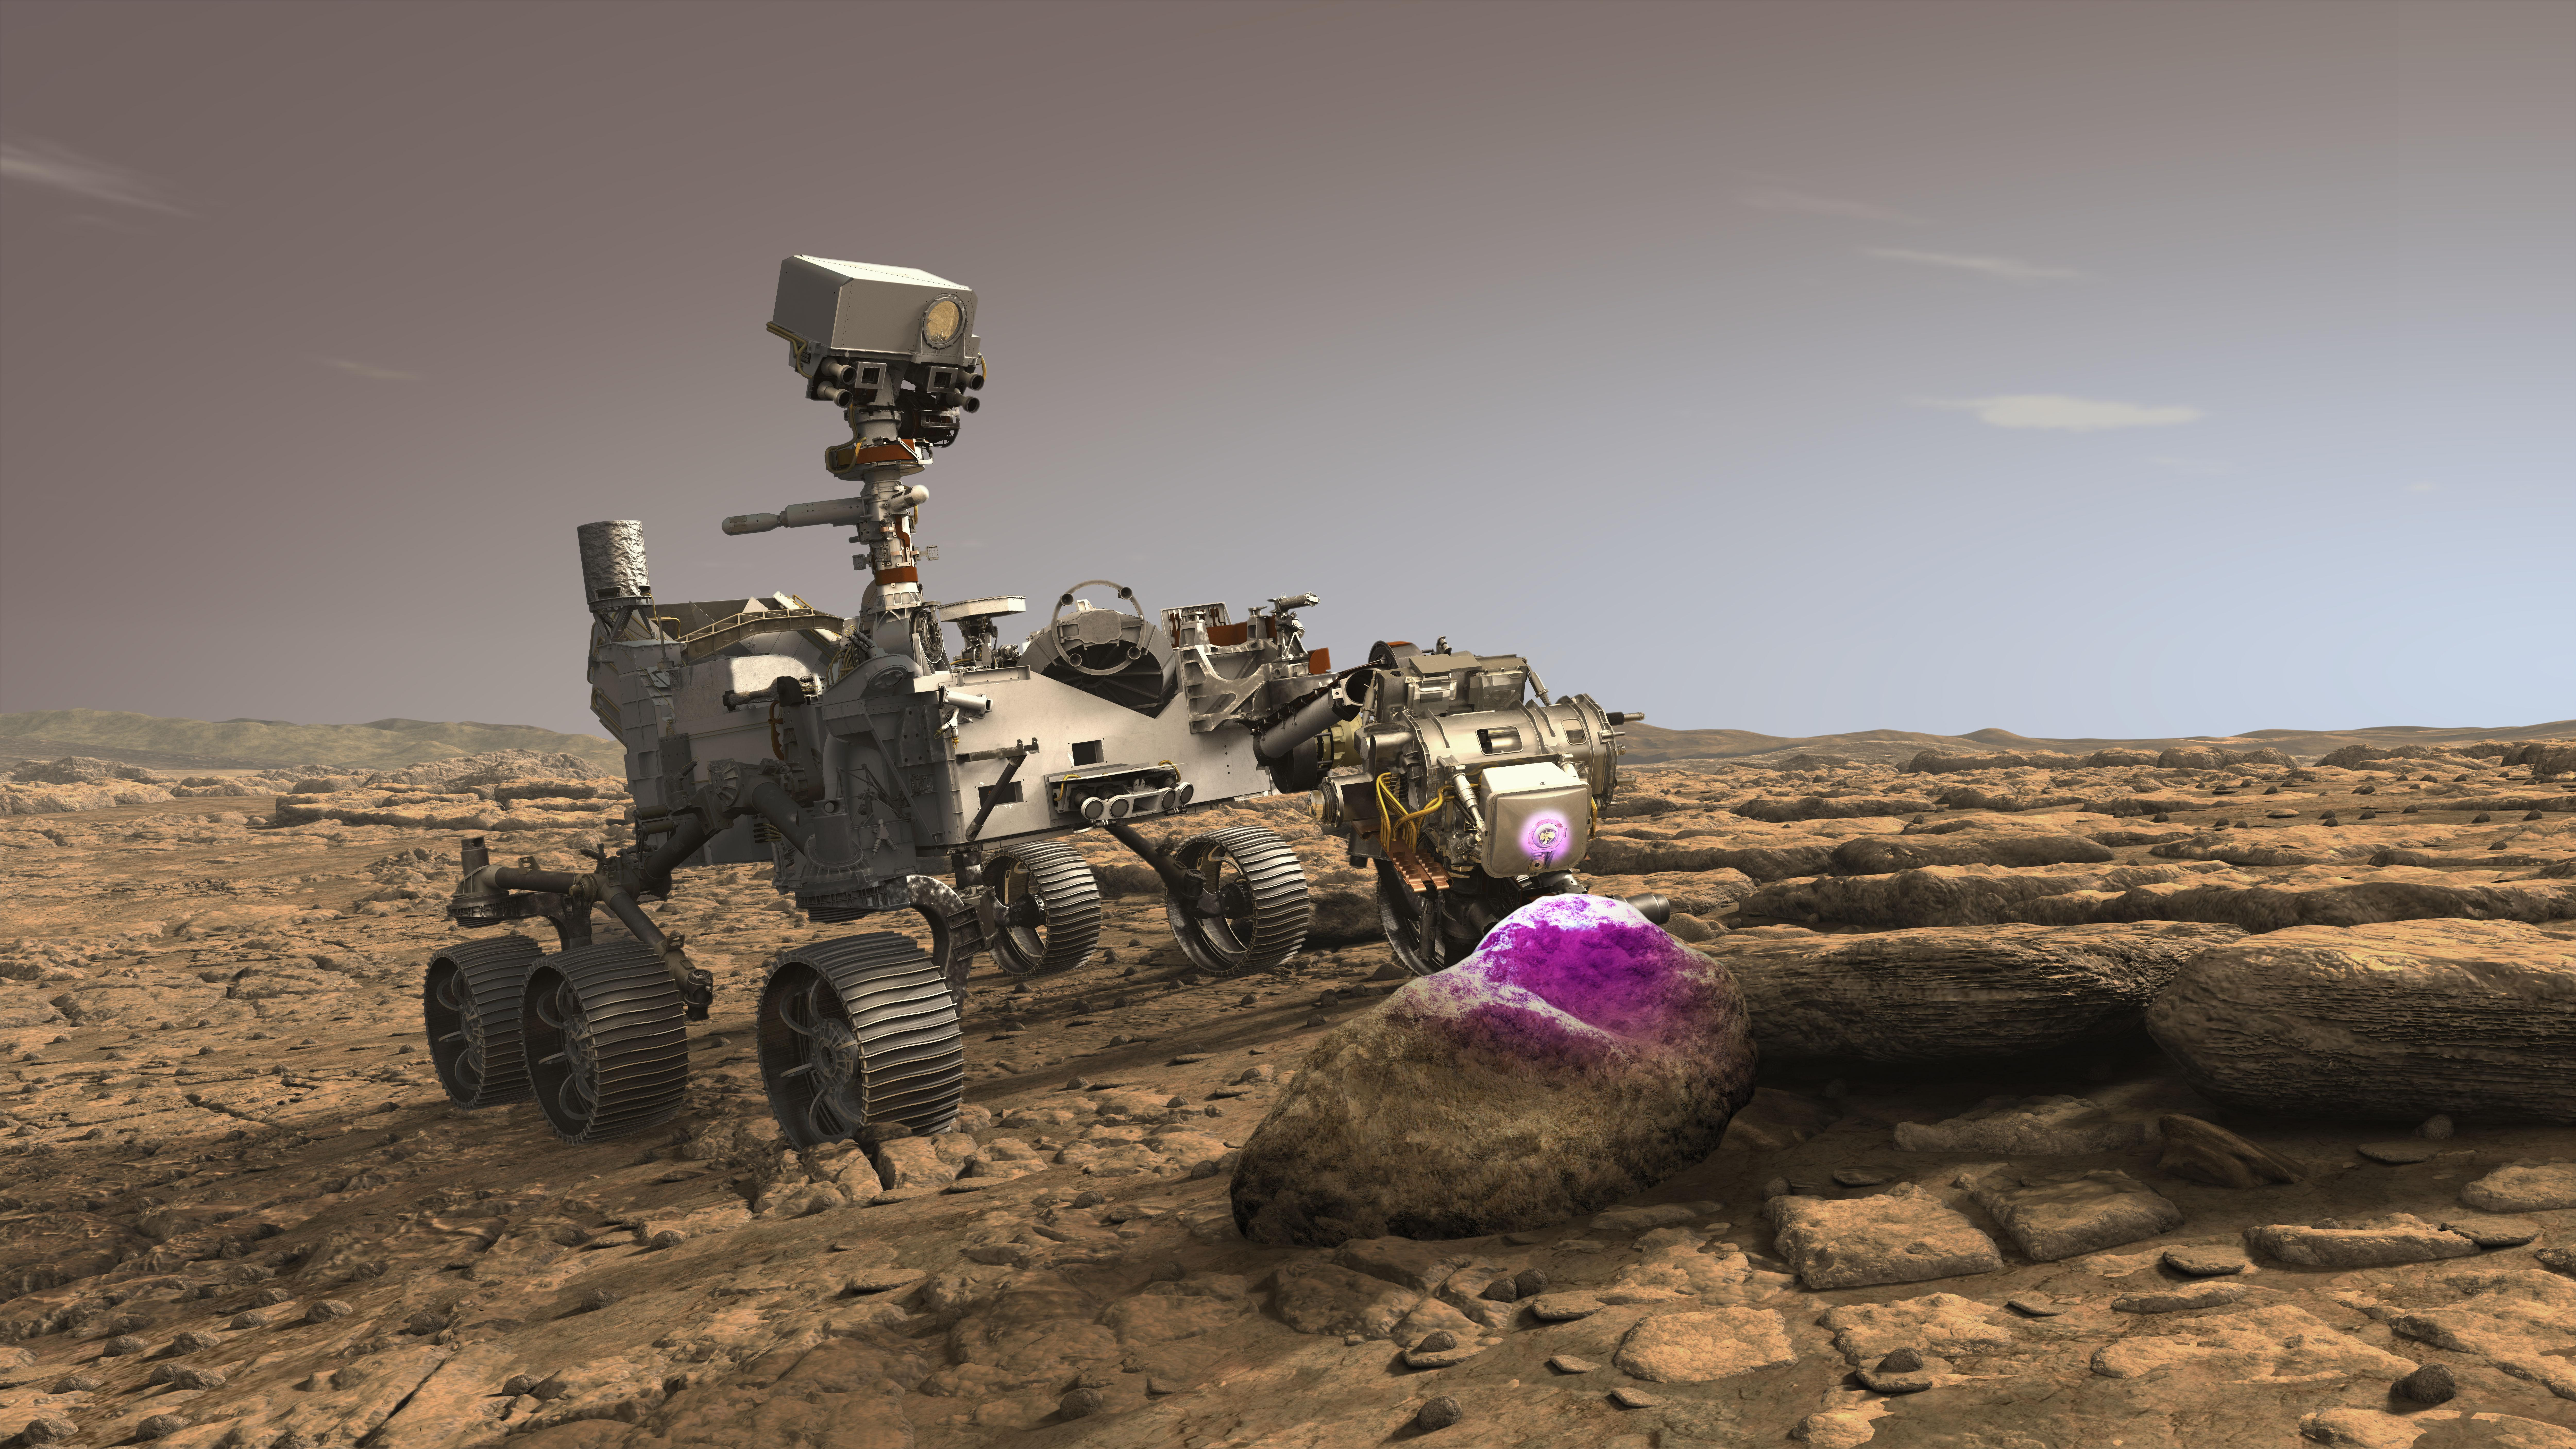 Space Images | Perseverance's PIXL at Work on Mars ...